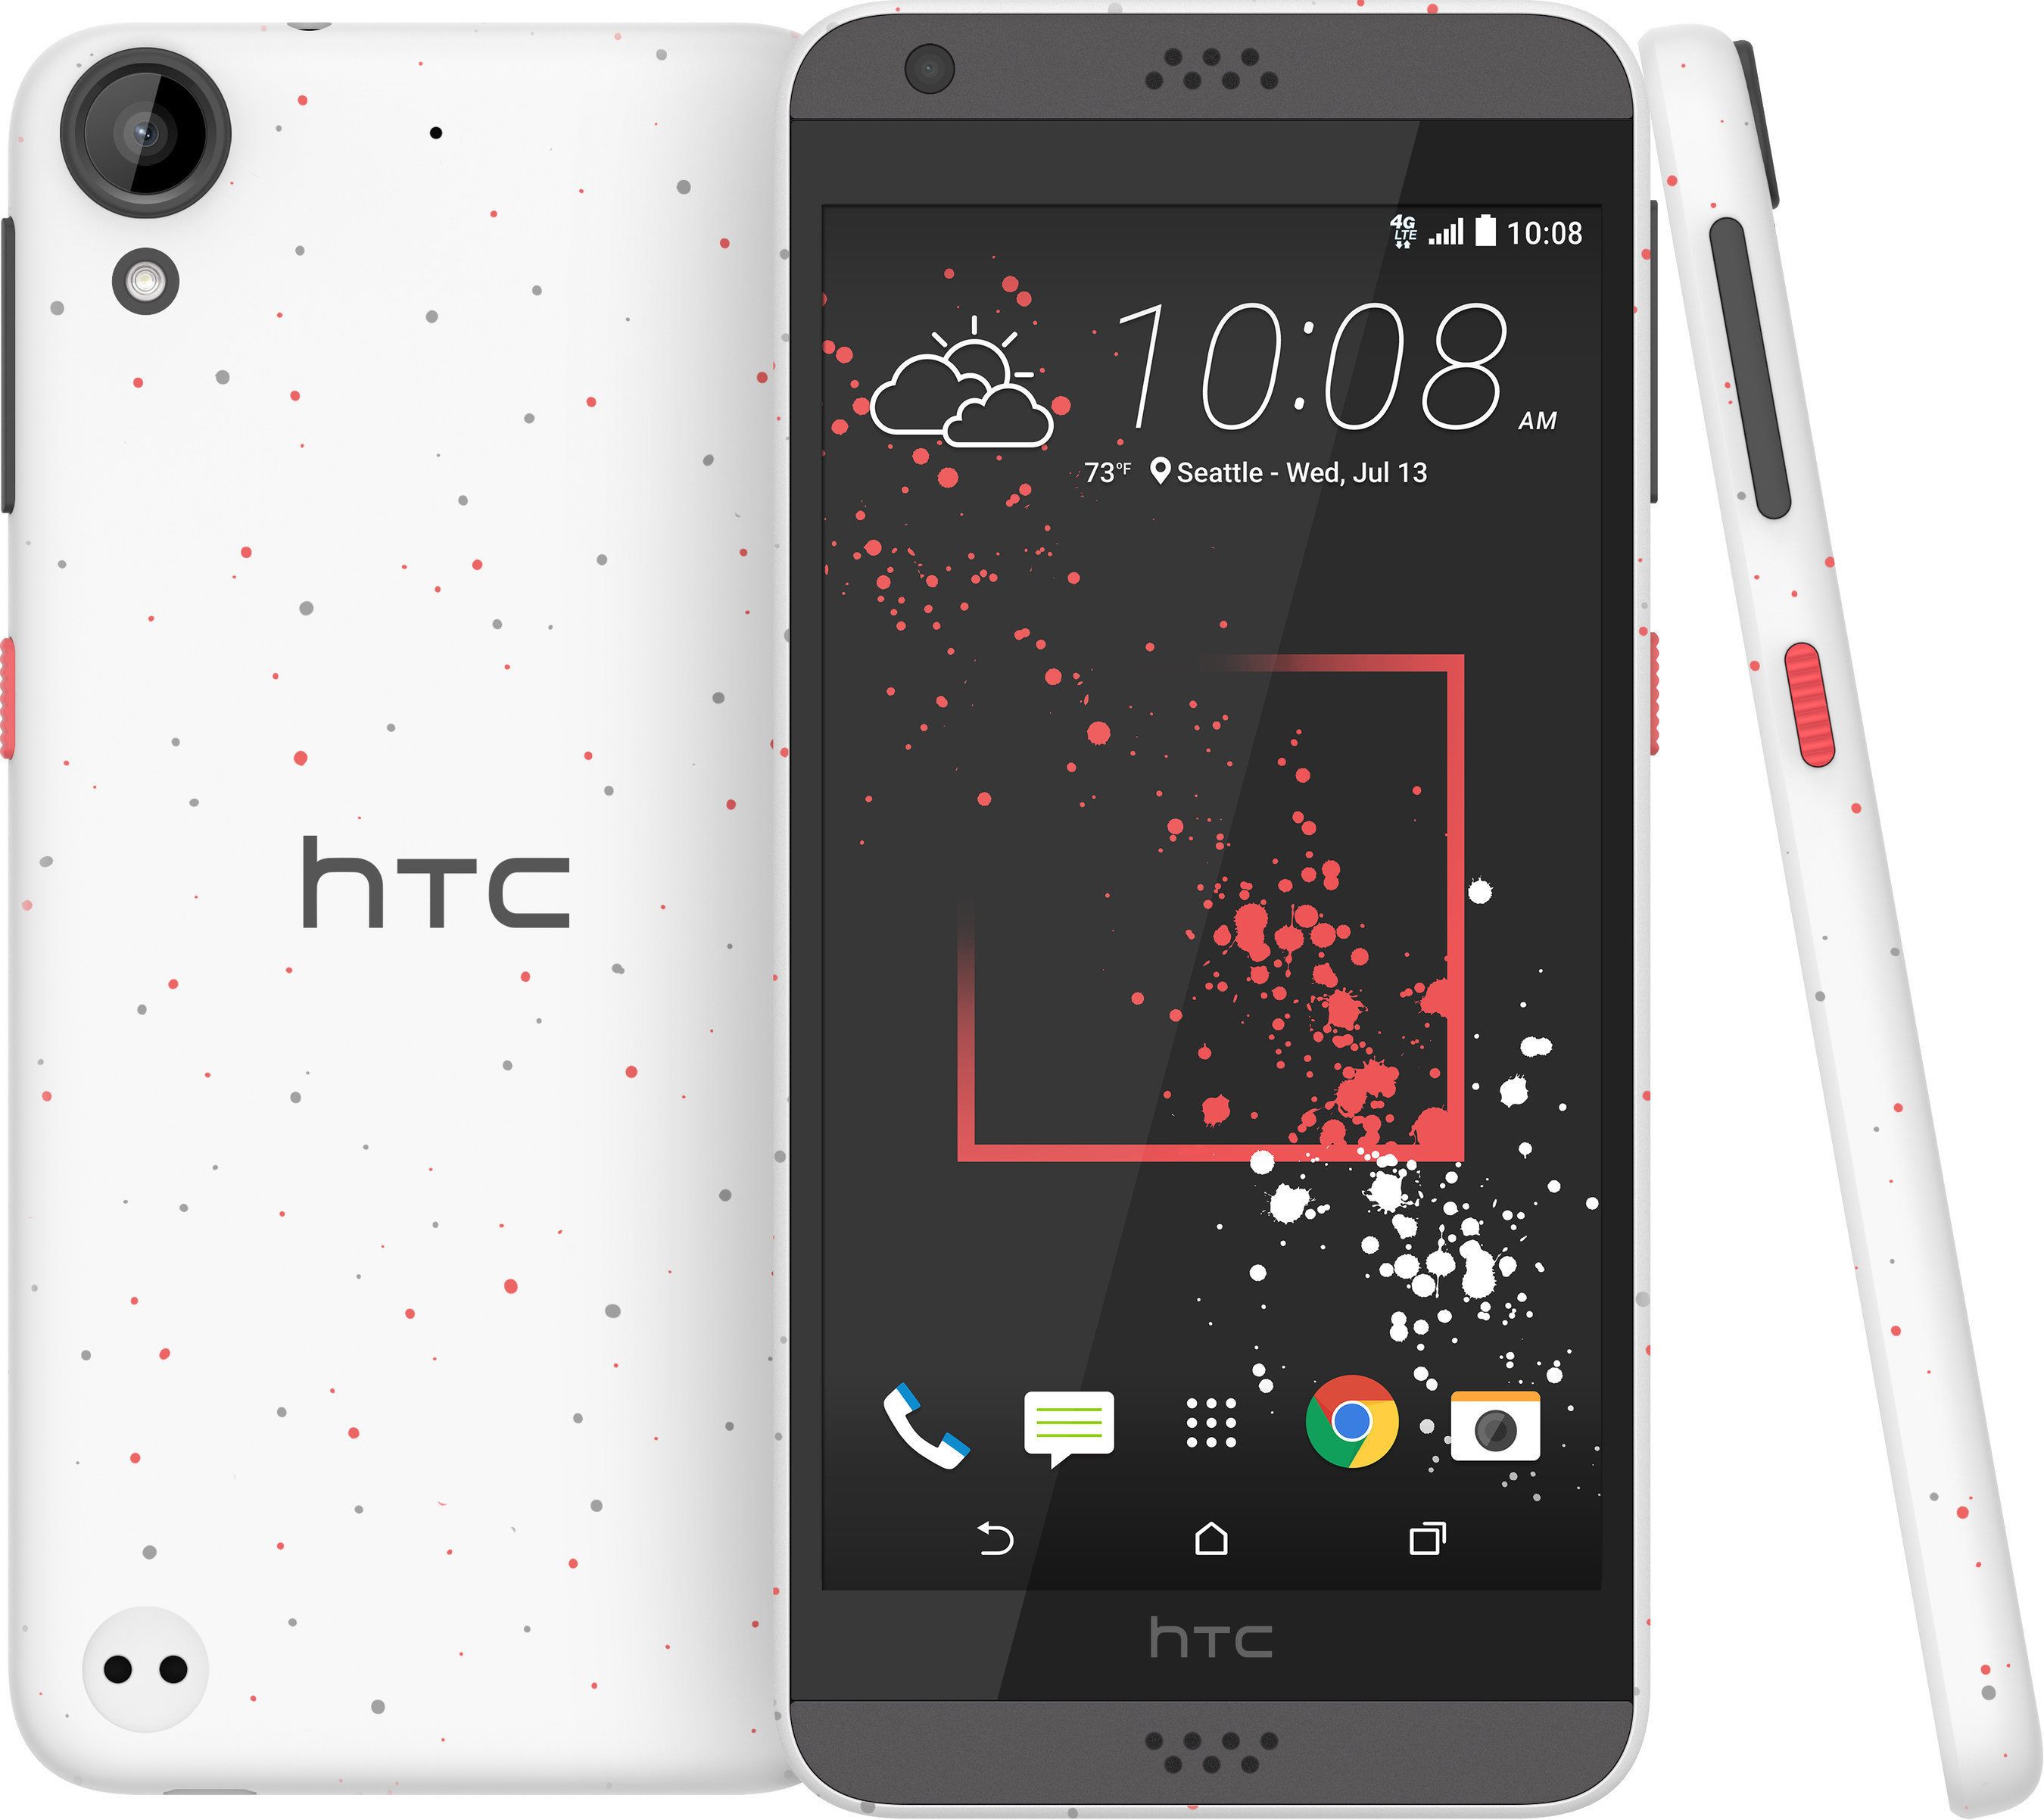 HTC Desire 530 smartphone with unique micro splash styling, impressive audio and great cameras.